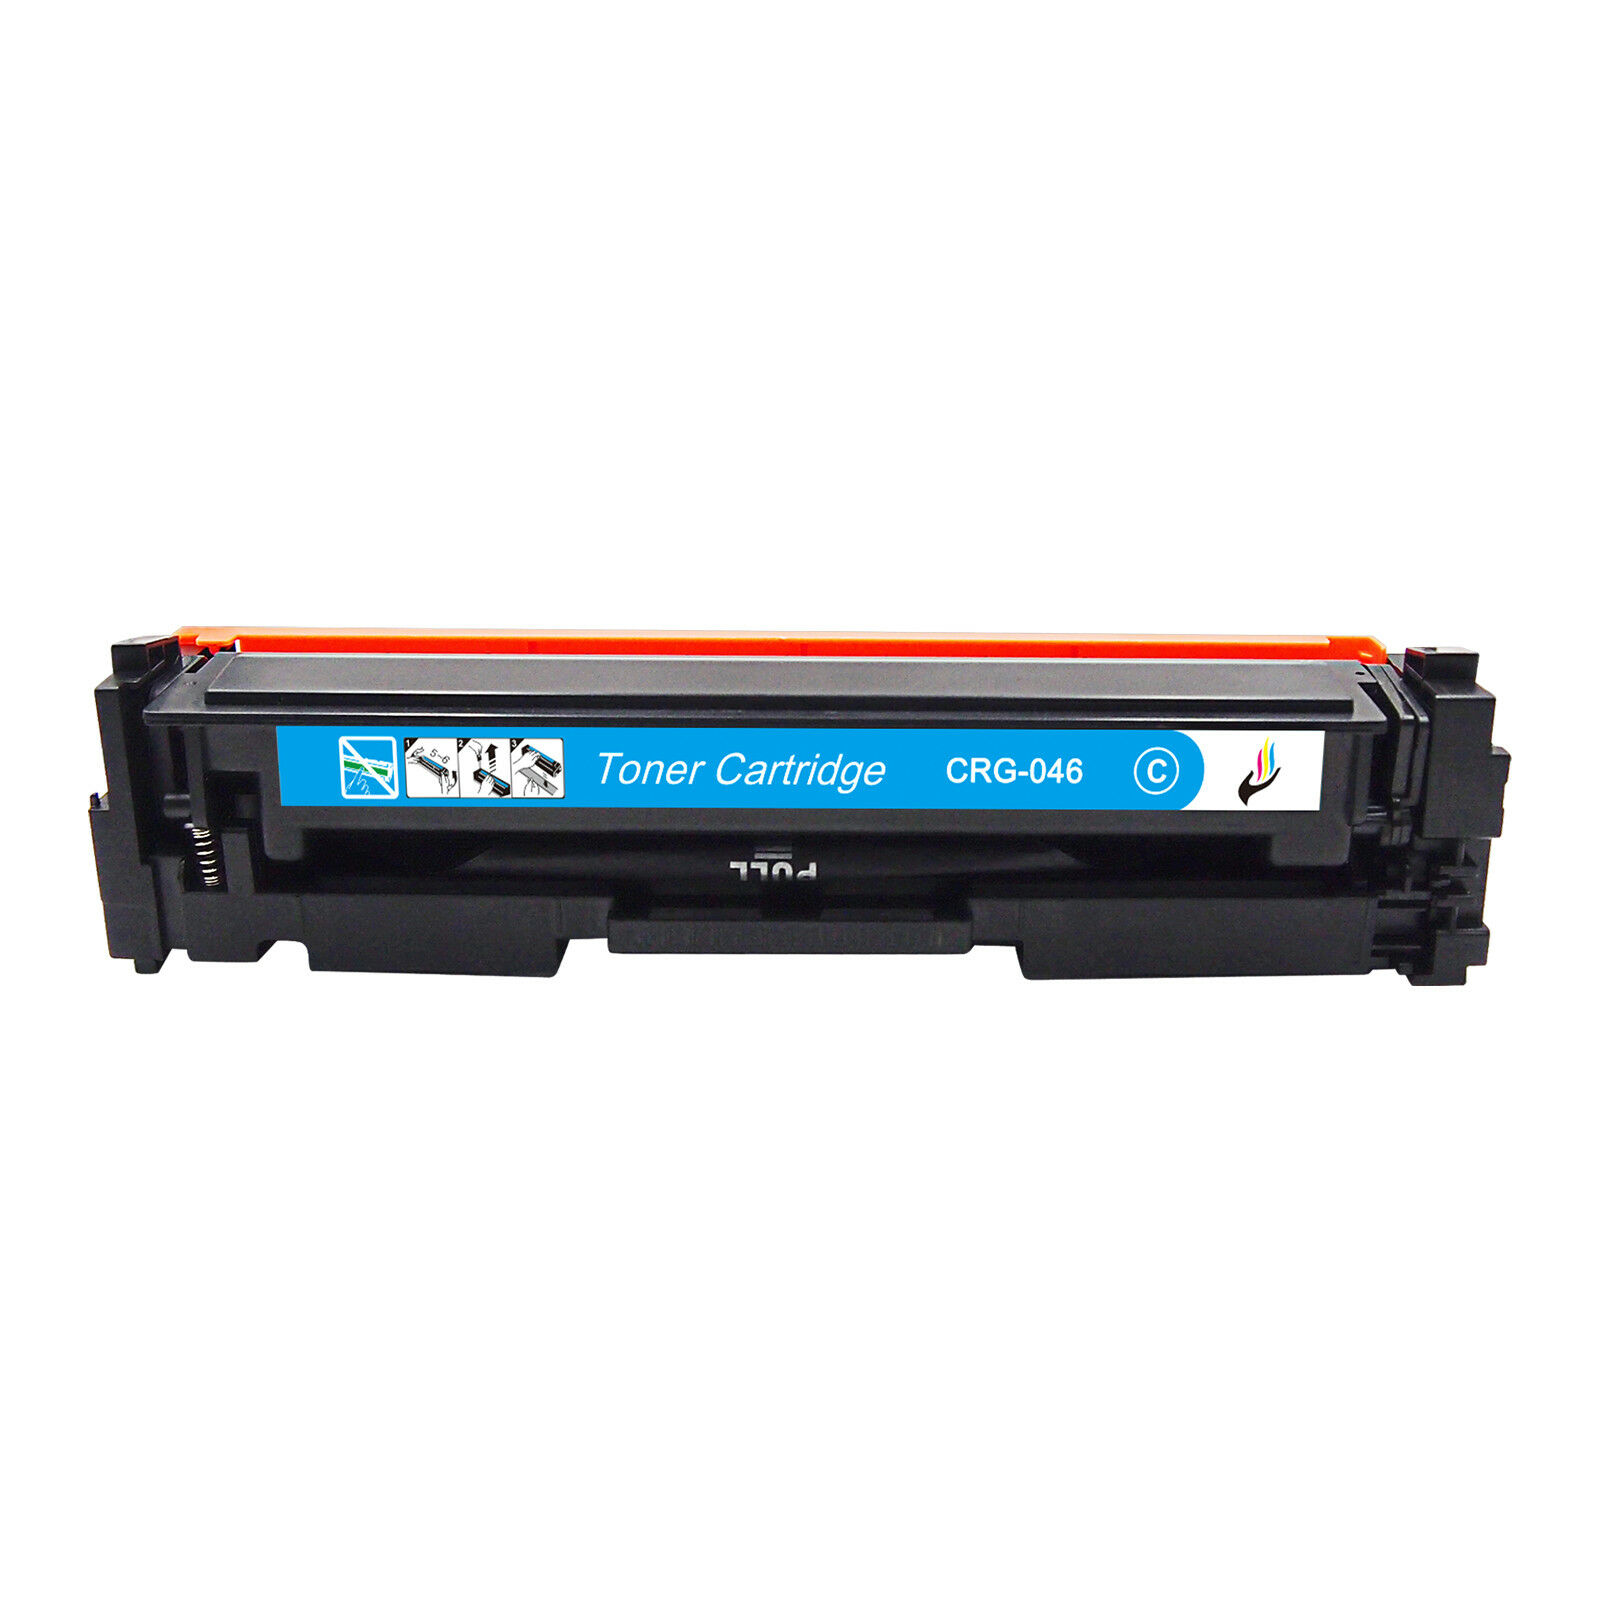 InkFenm Compatible Toner Cartridges Replacement for Canon CRG-046 Toner Cartridge for Canon I-SENSYS MF732CDW MF734CDW MF735CX LBP653CDW LBP654CX LBP653 LBP654 Toner,4 Colors